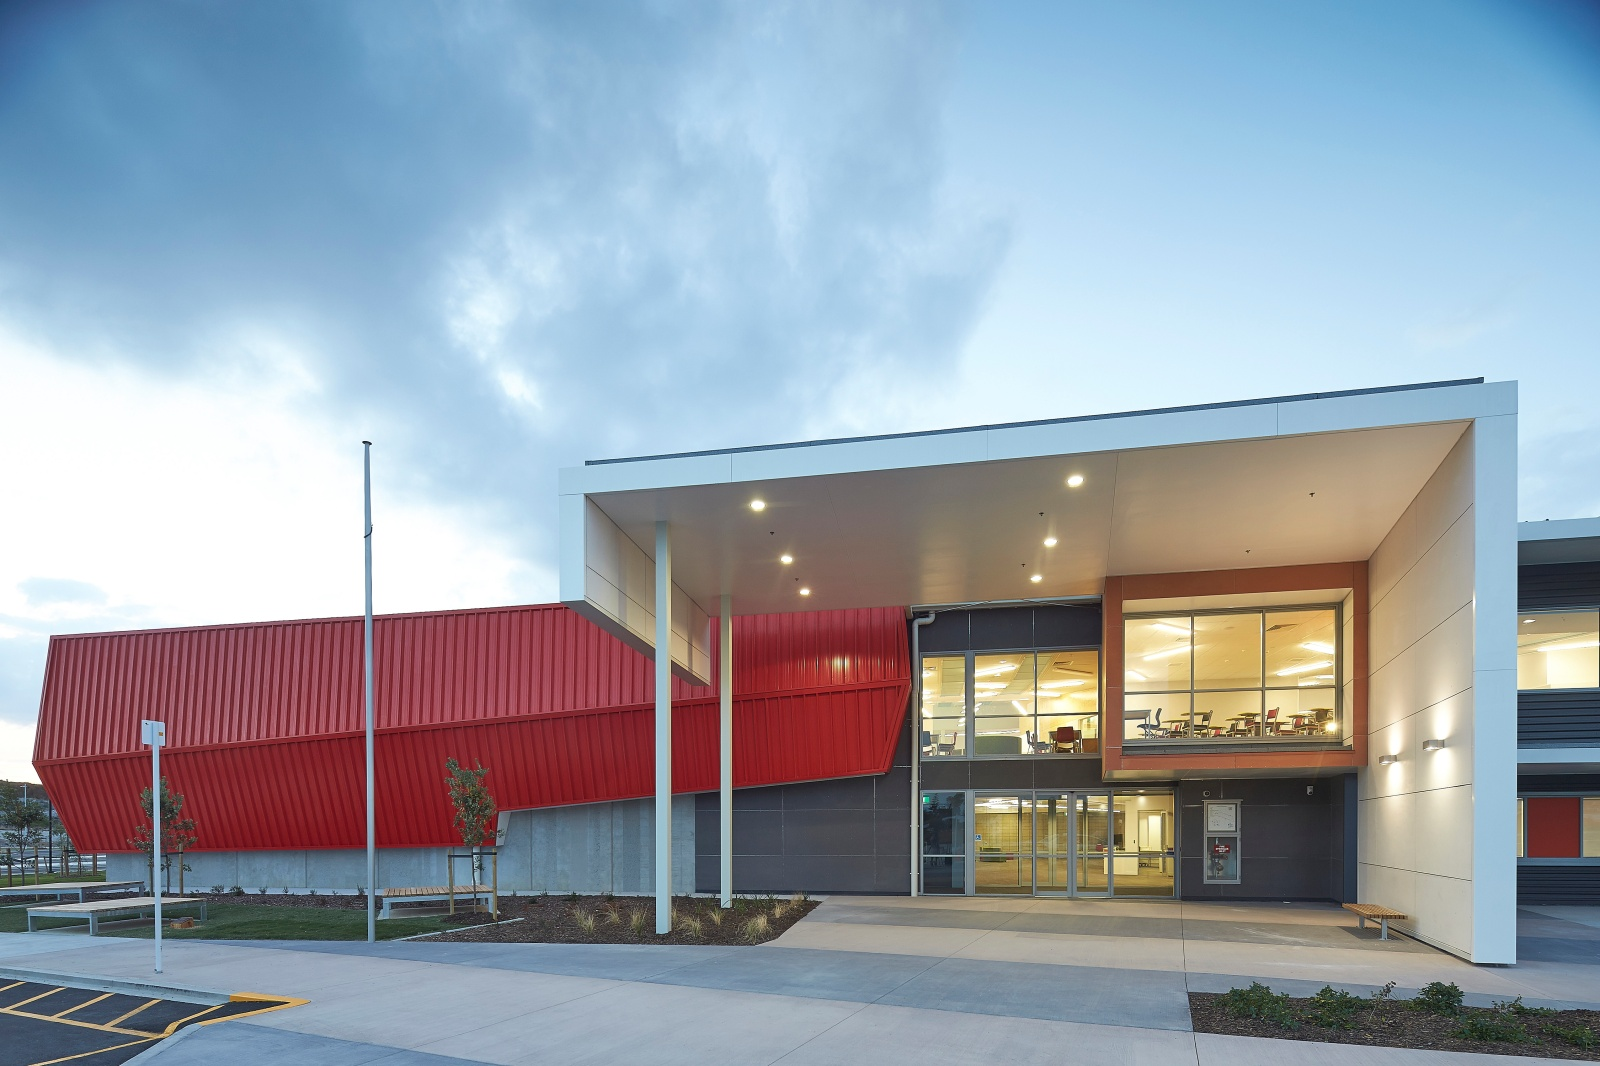 Hobsonville Point Secondary School - HiRes 27_web.jpg